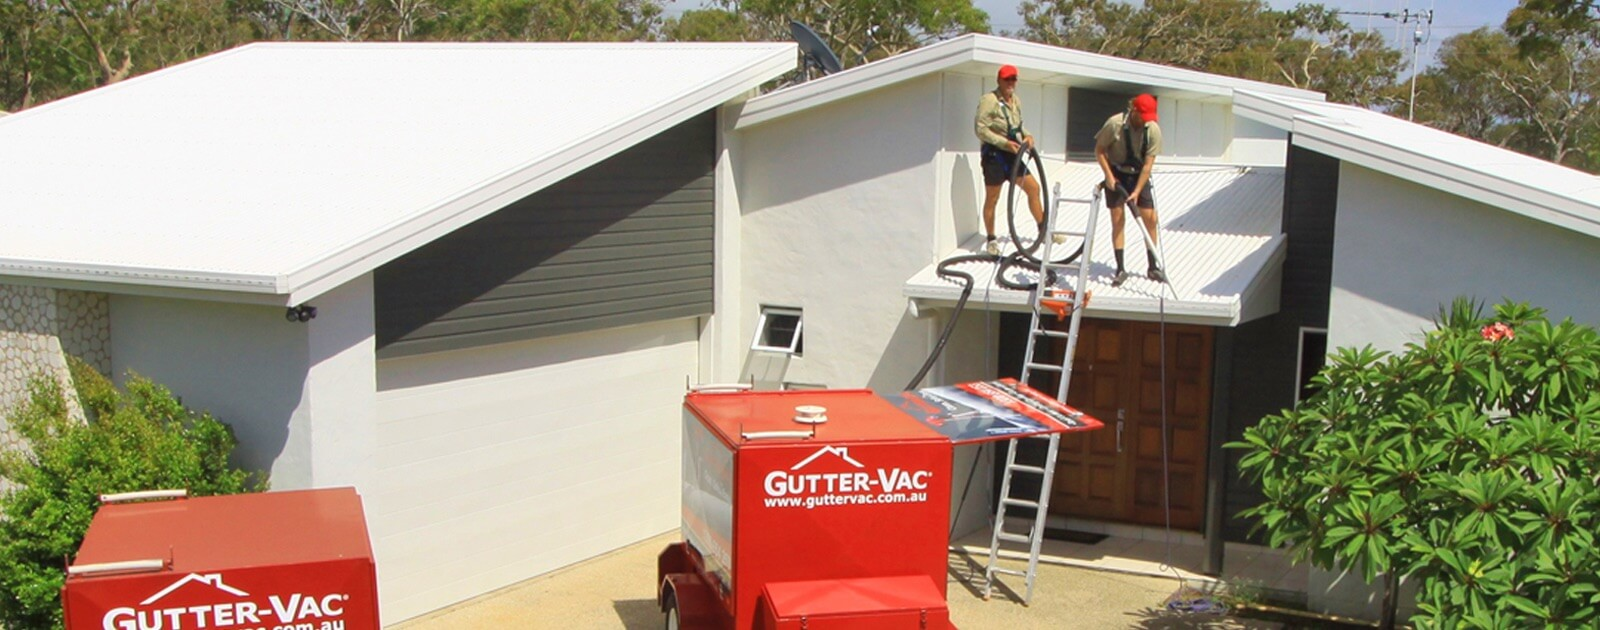 Gutter-Vac offers professional gutter cleaning services